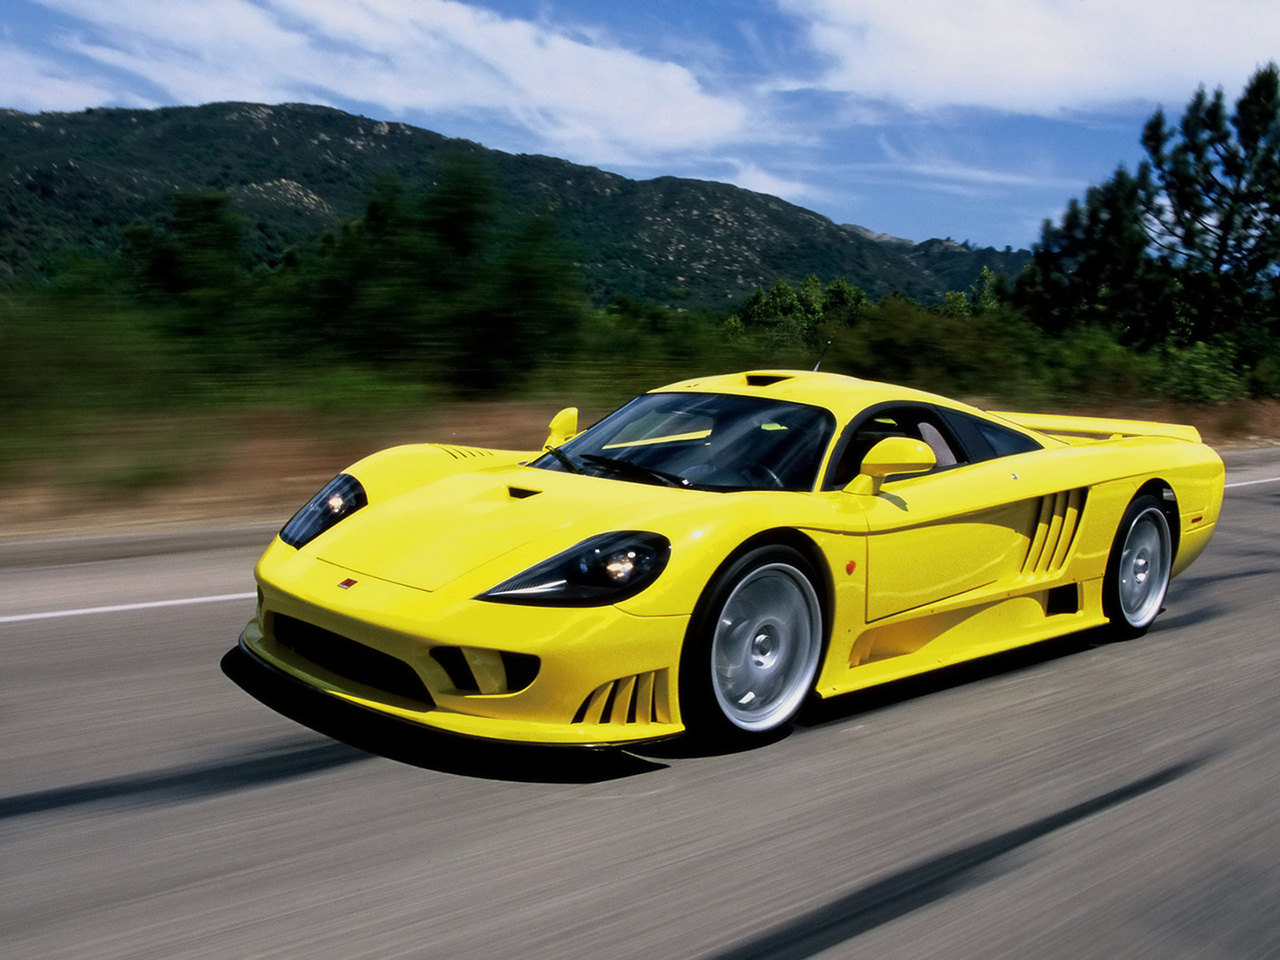 Download all saleen s7 2004 pictures 1 8 mb